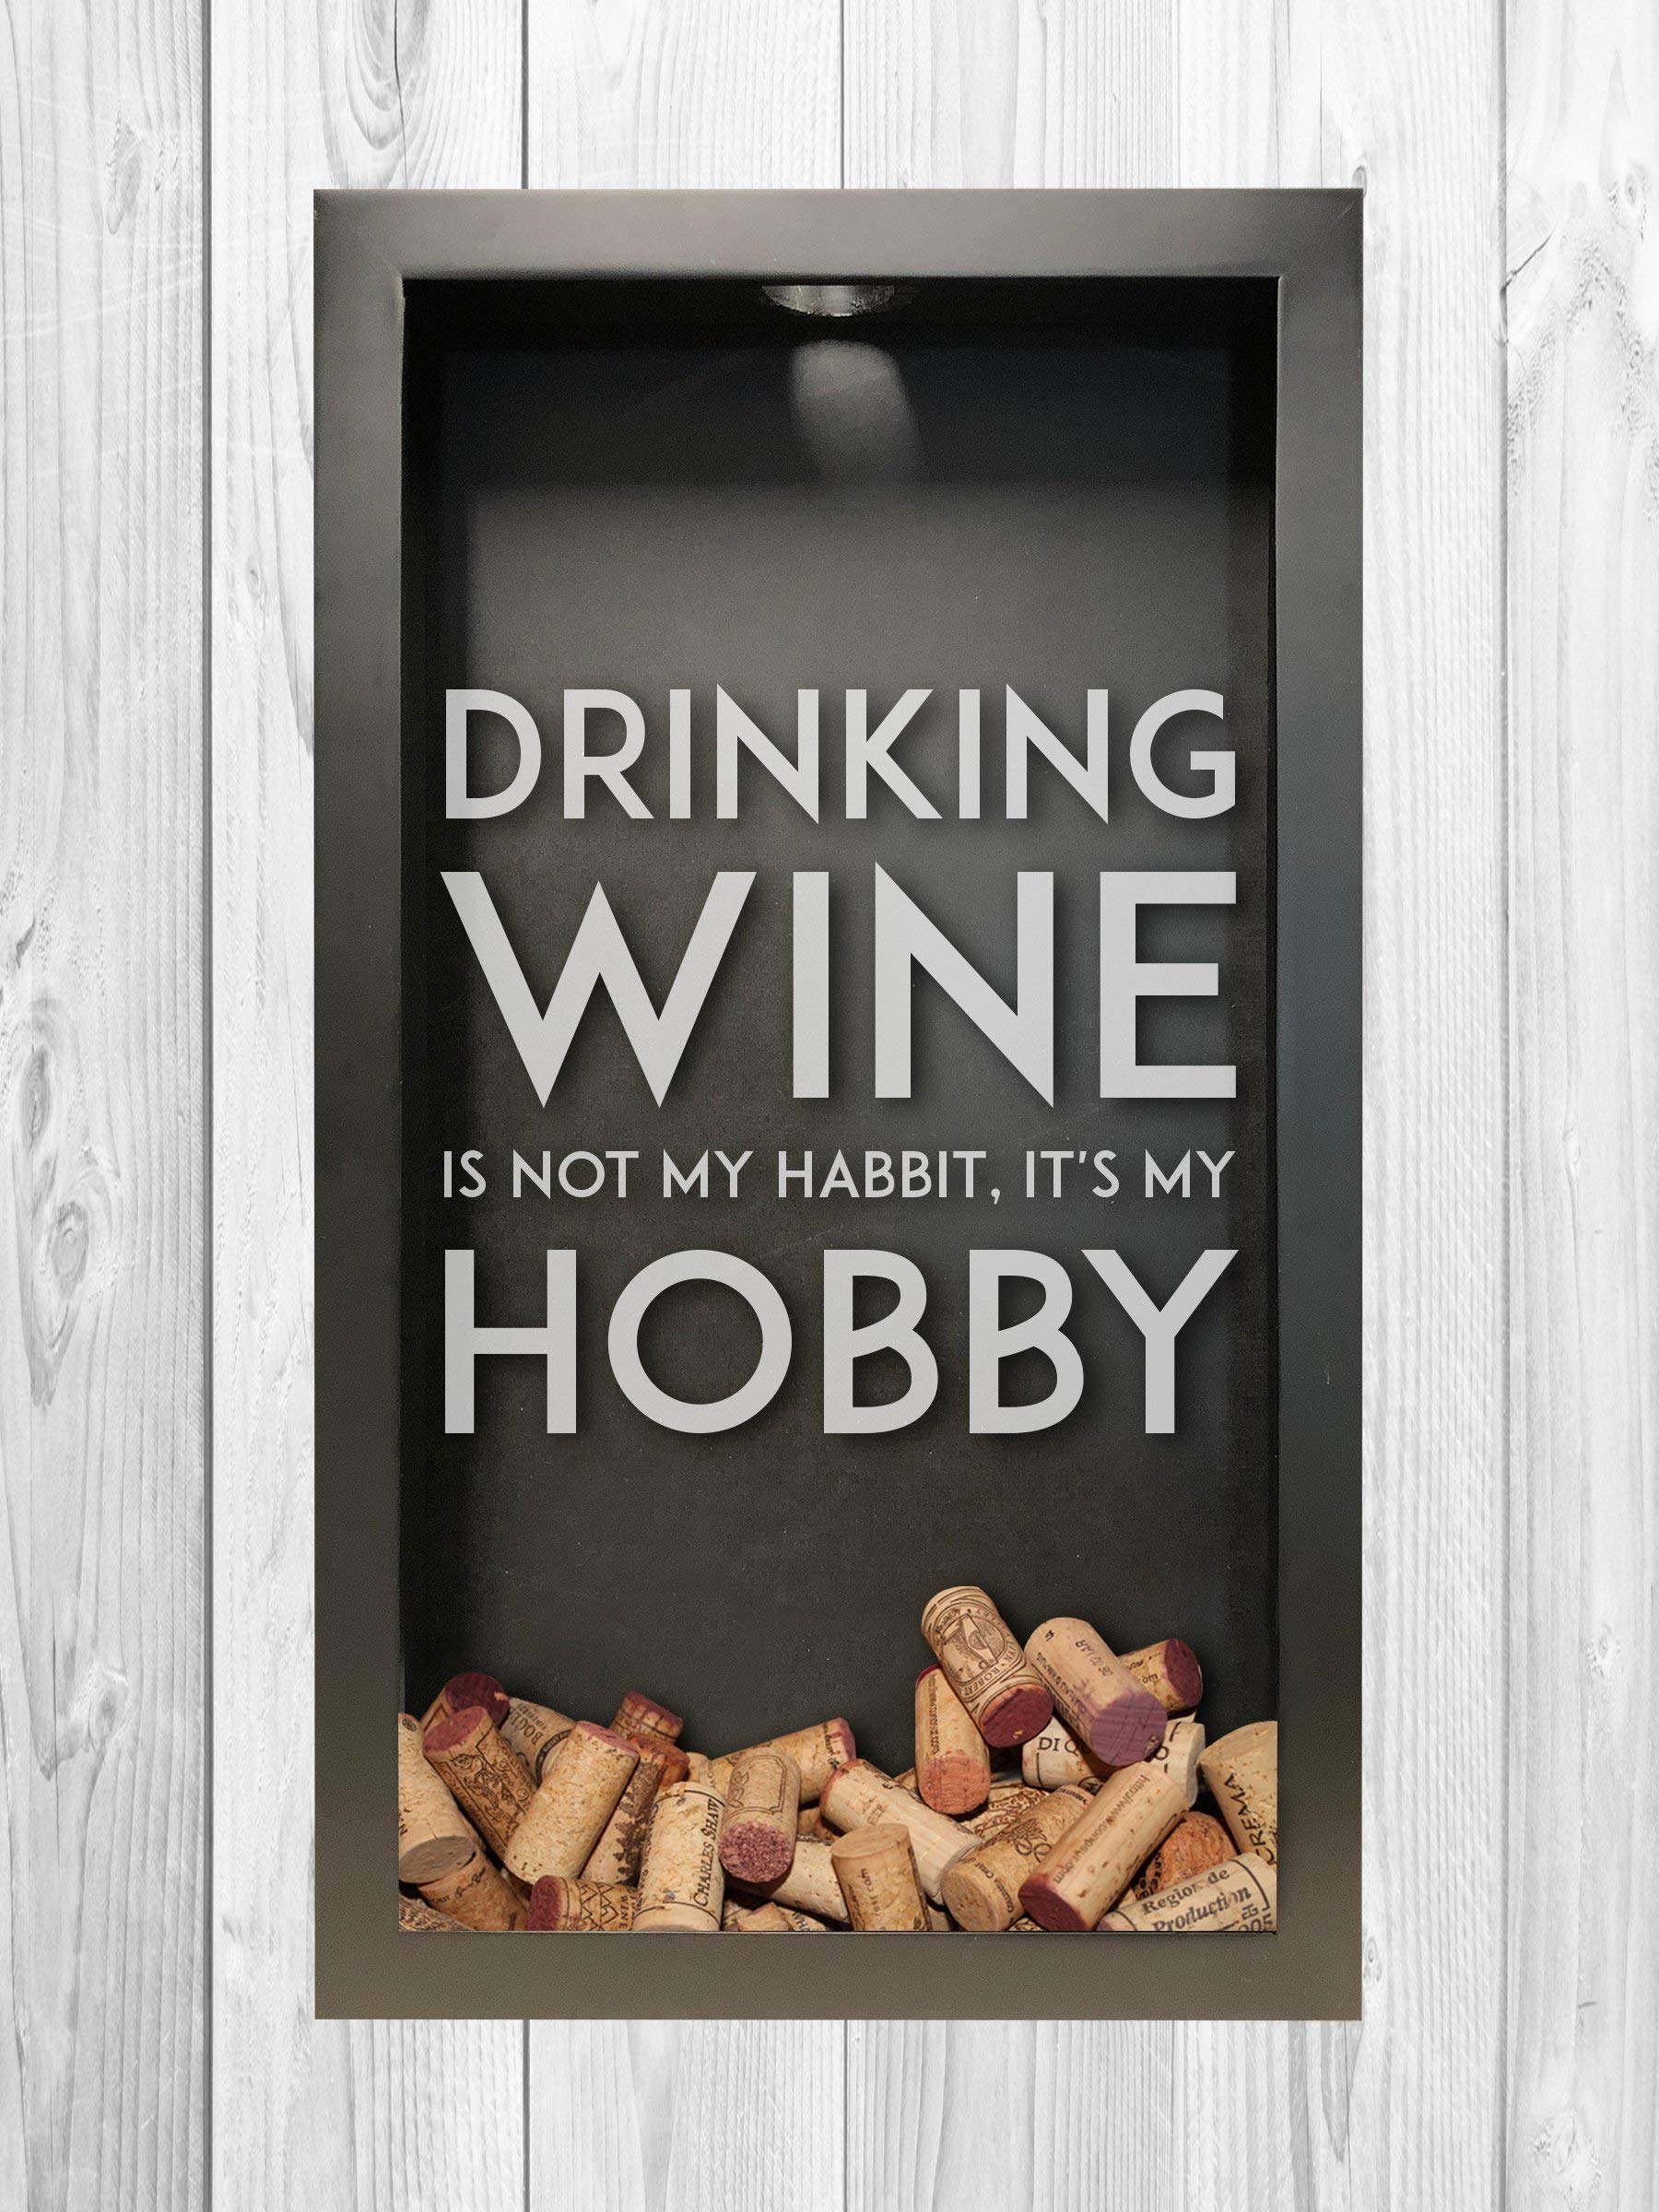 Wine Habit, Hobby Shadow Box | Wine Lover Gift | Wine Cork Shadow Box